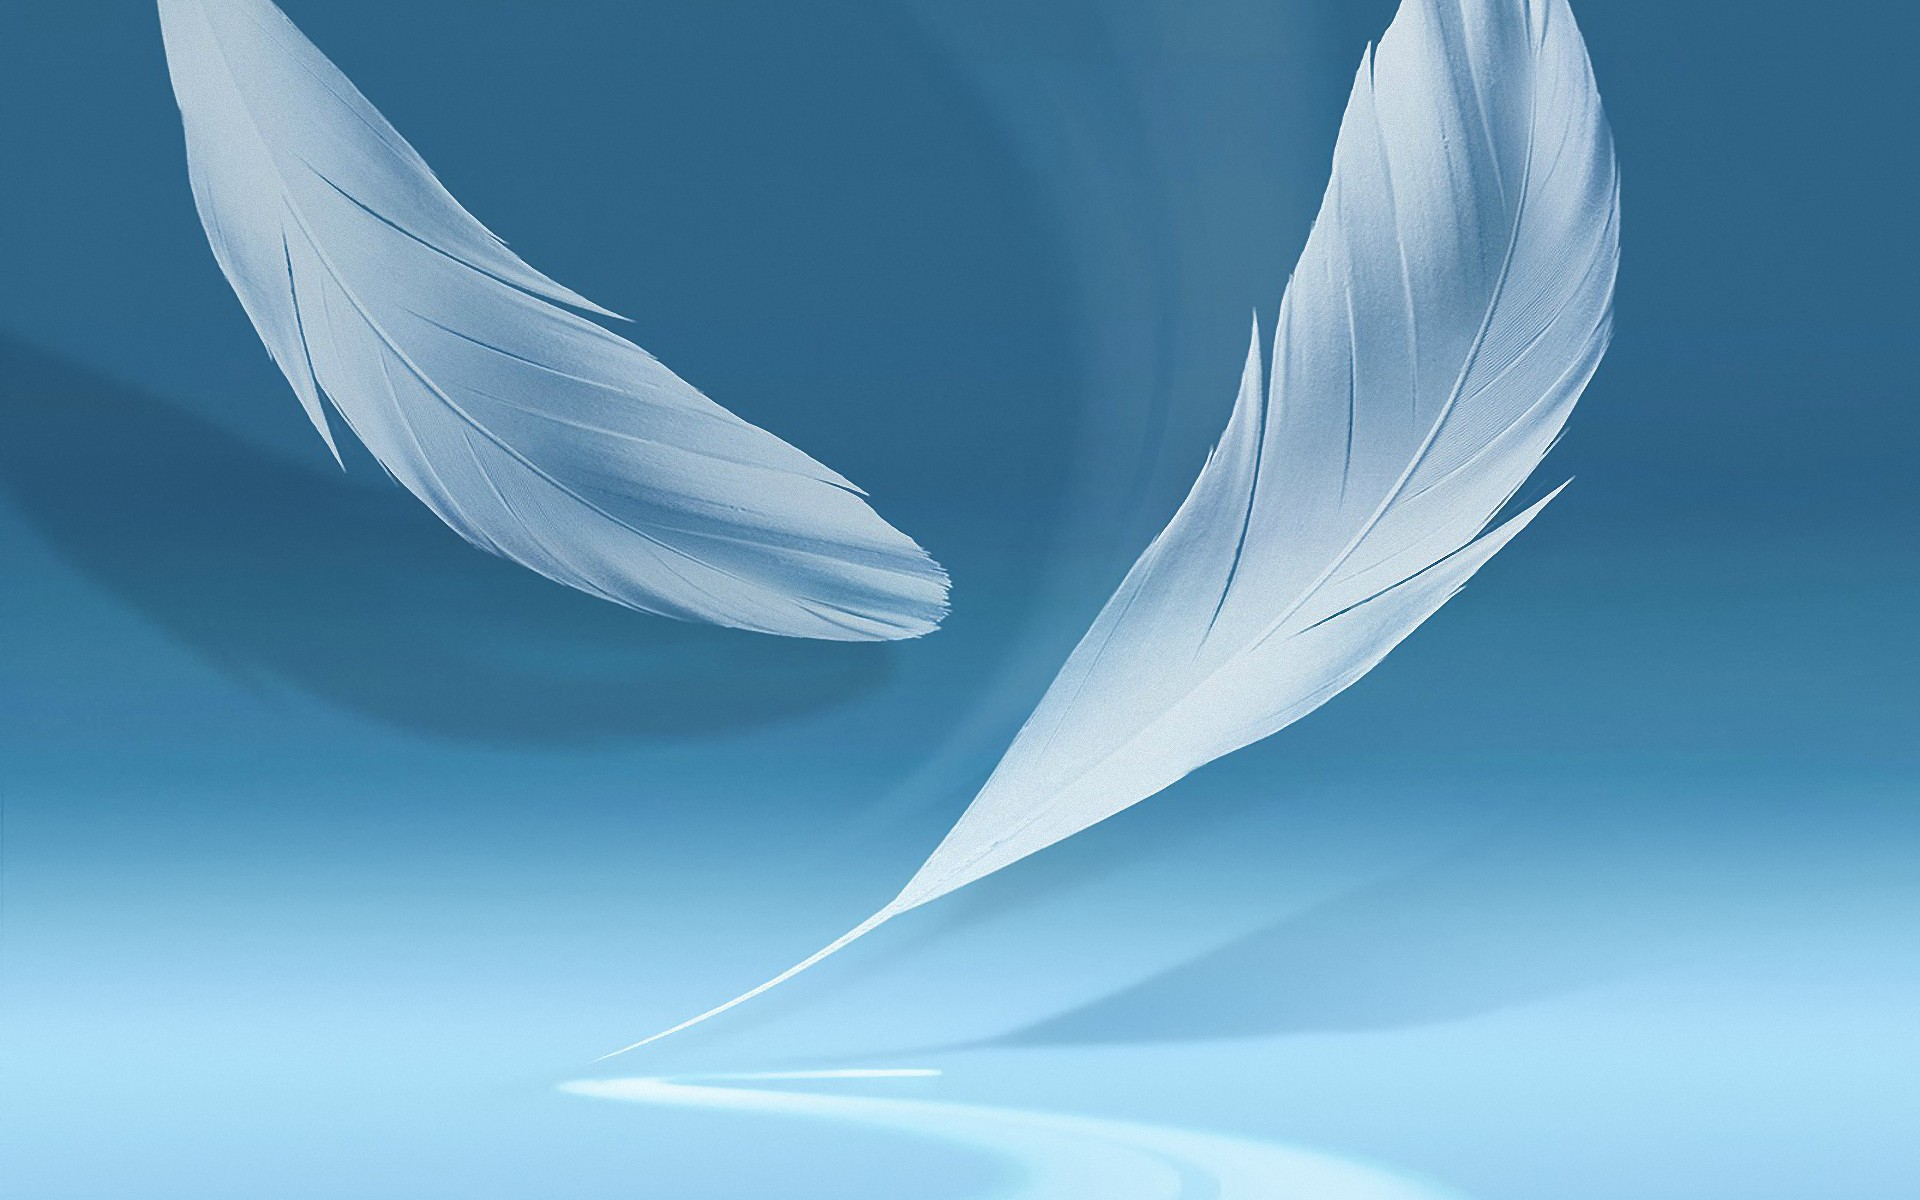 Feather Wallpaper